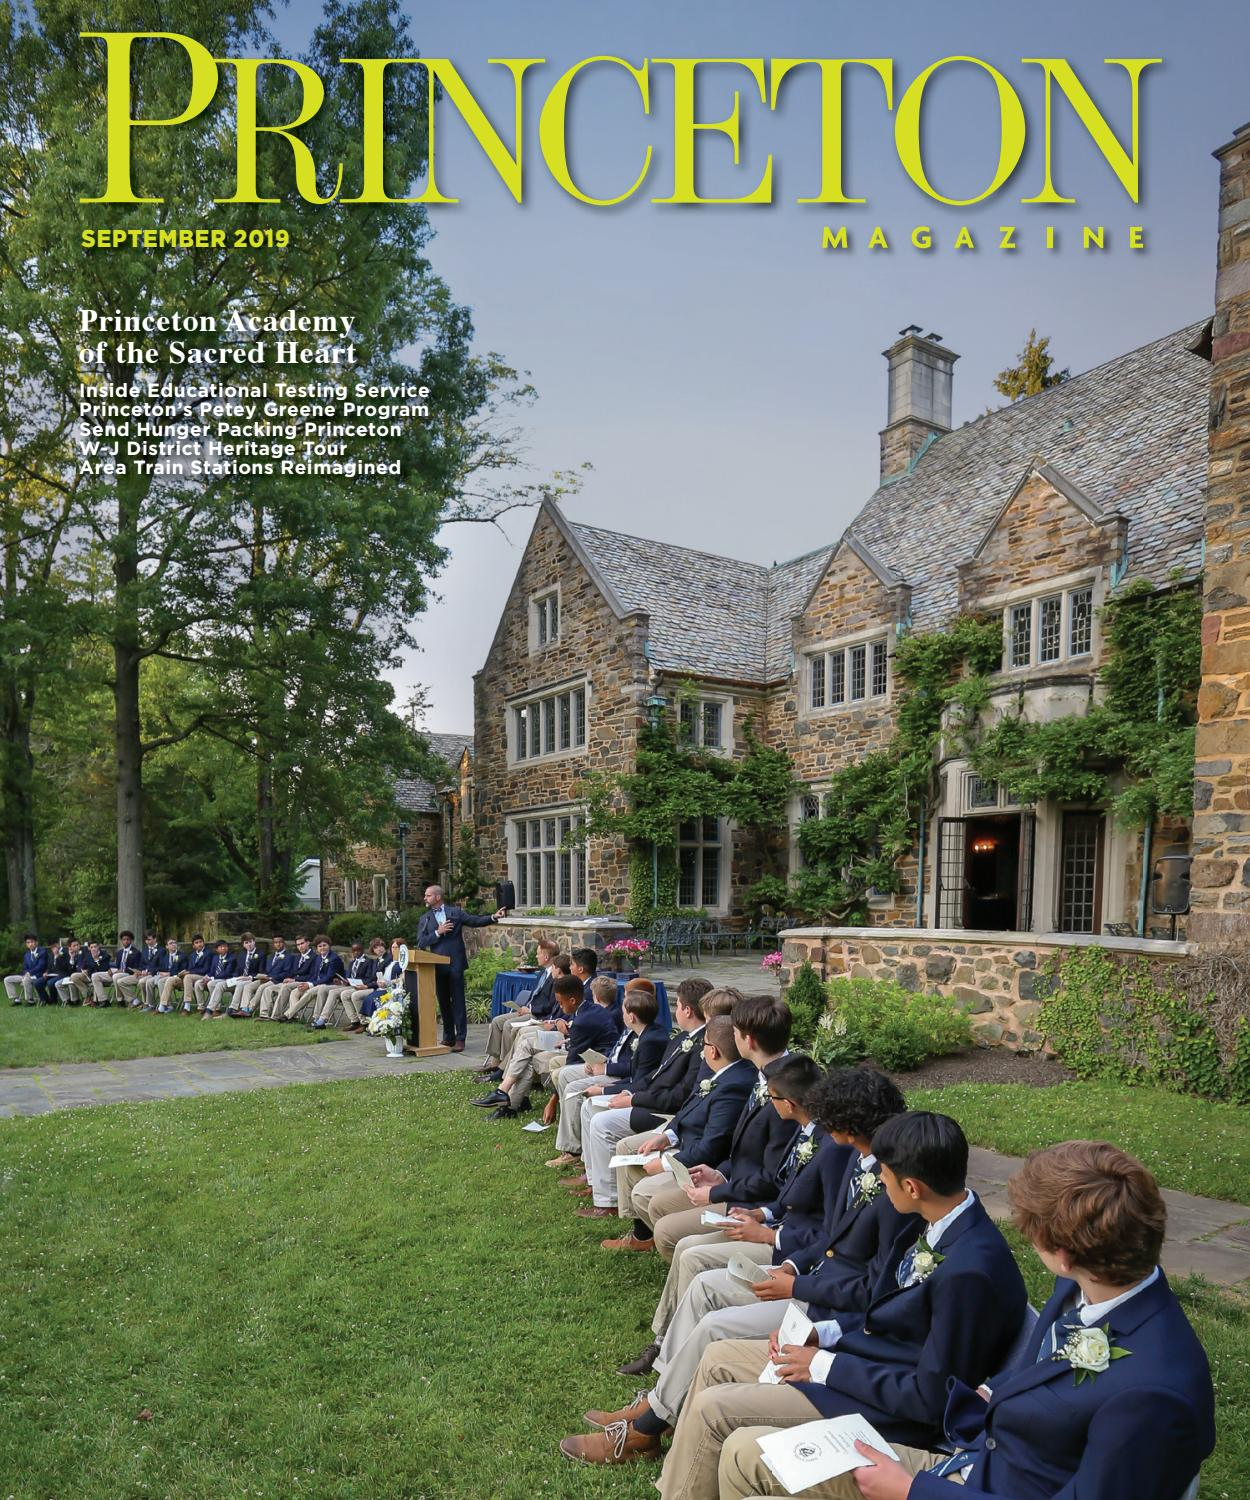 straight decorative interior wrought iron house indoor.htm princeton magazine  september 2019 by witherspoon media group issuu  princeton magazine  september 2019 by